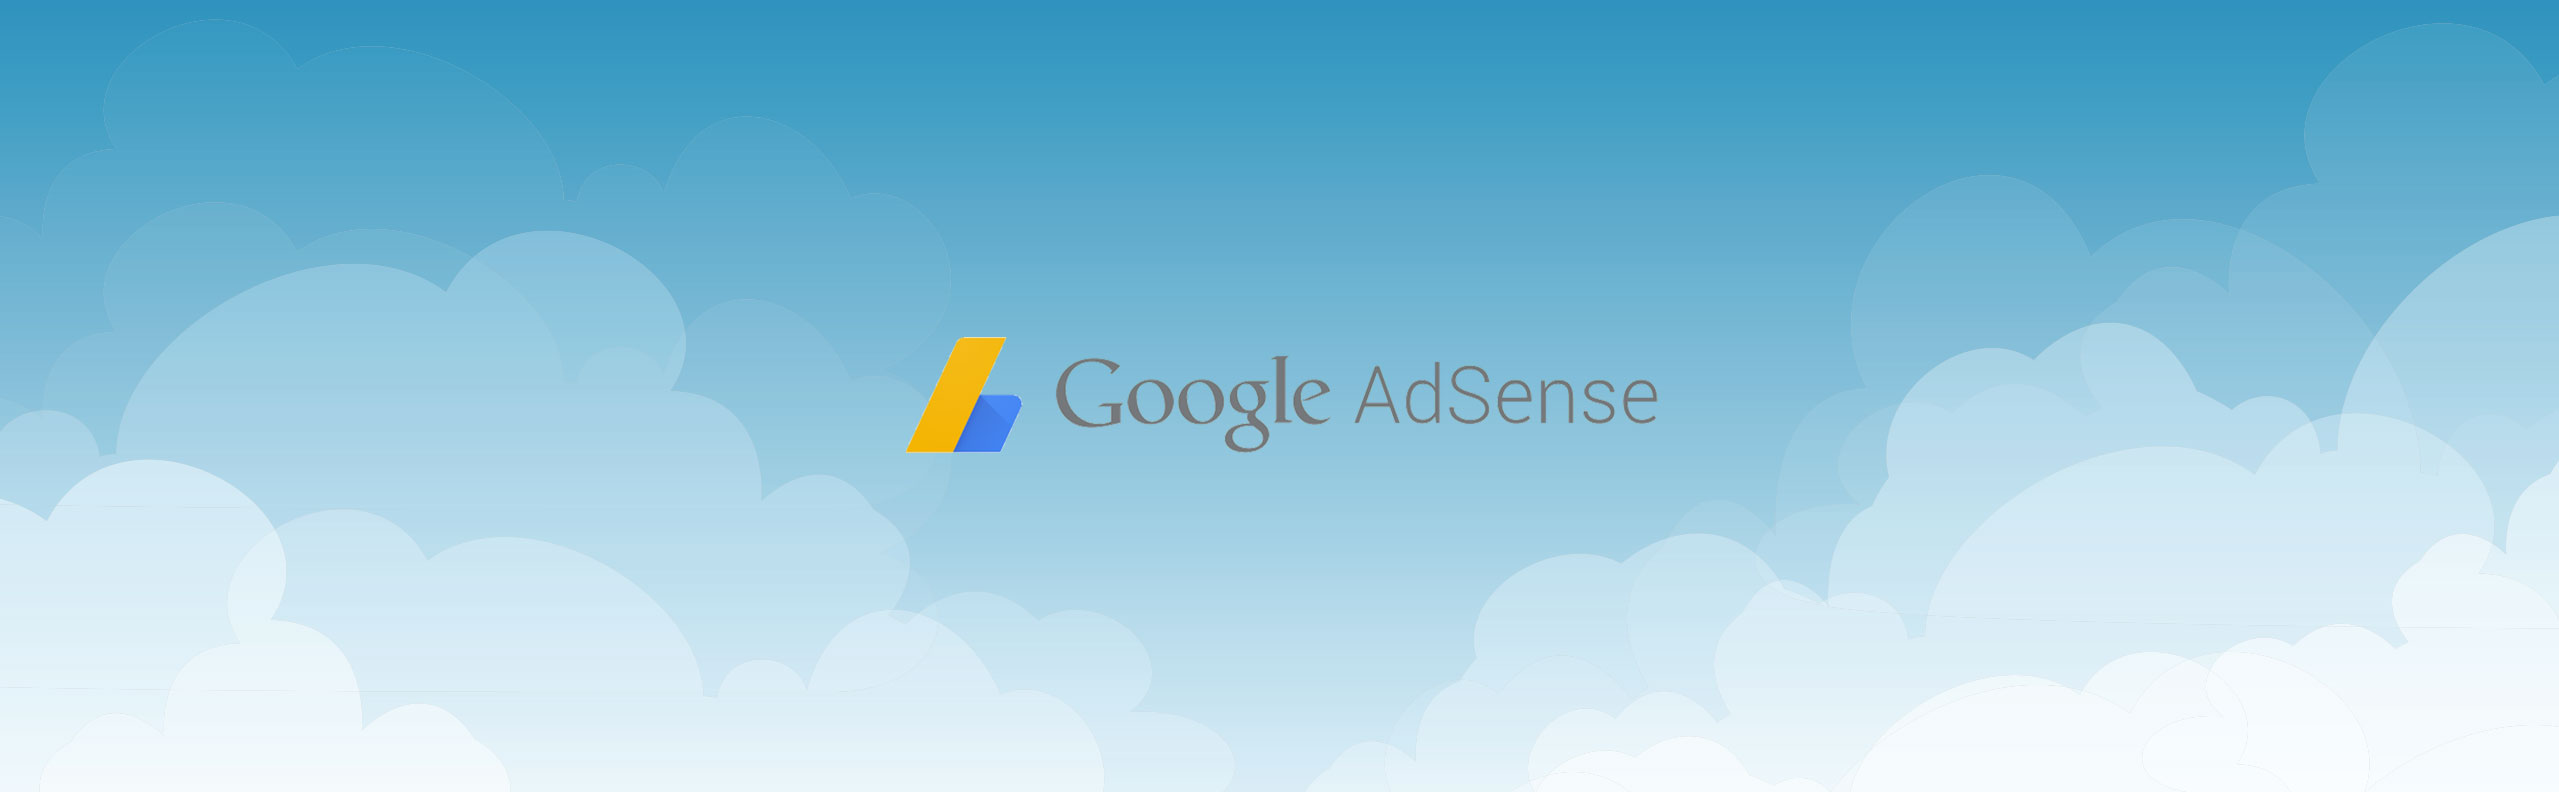 Best Practices for Adding AdSense to Your Website